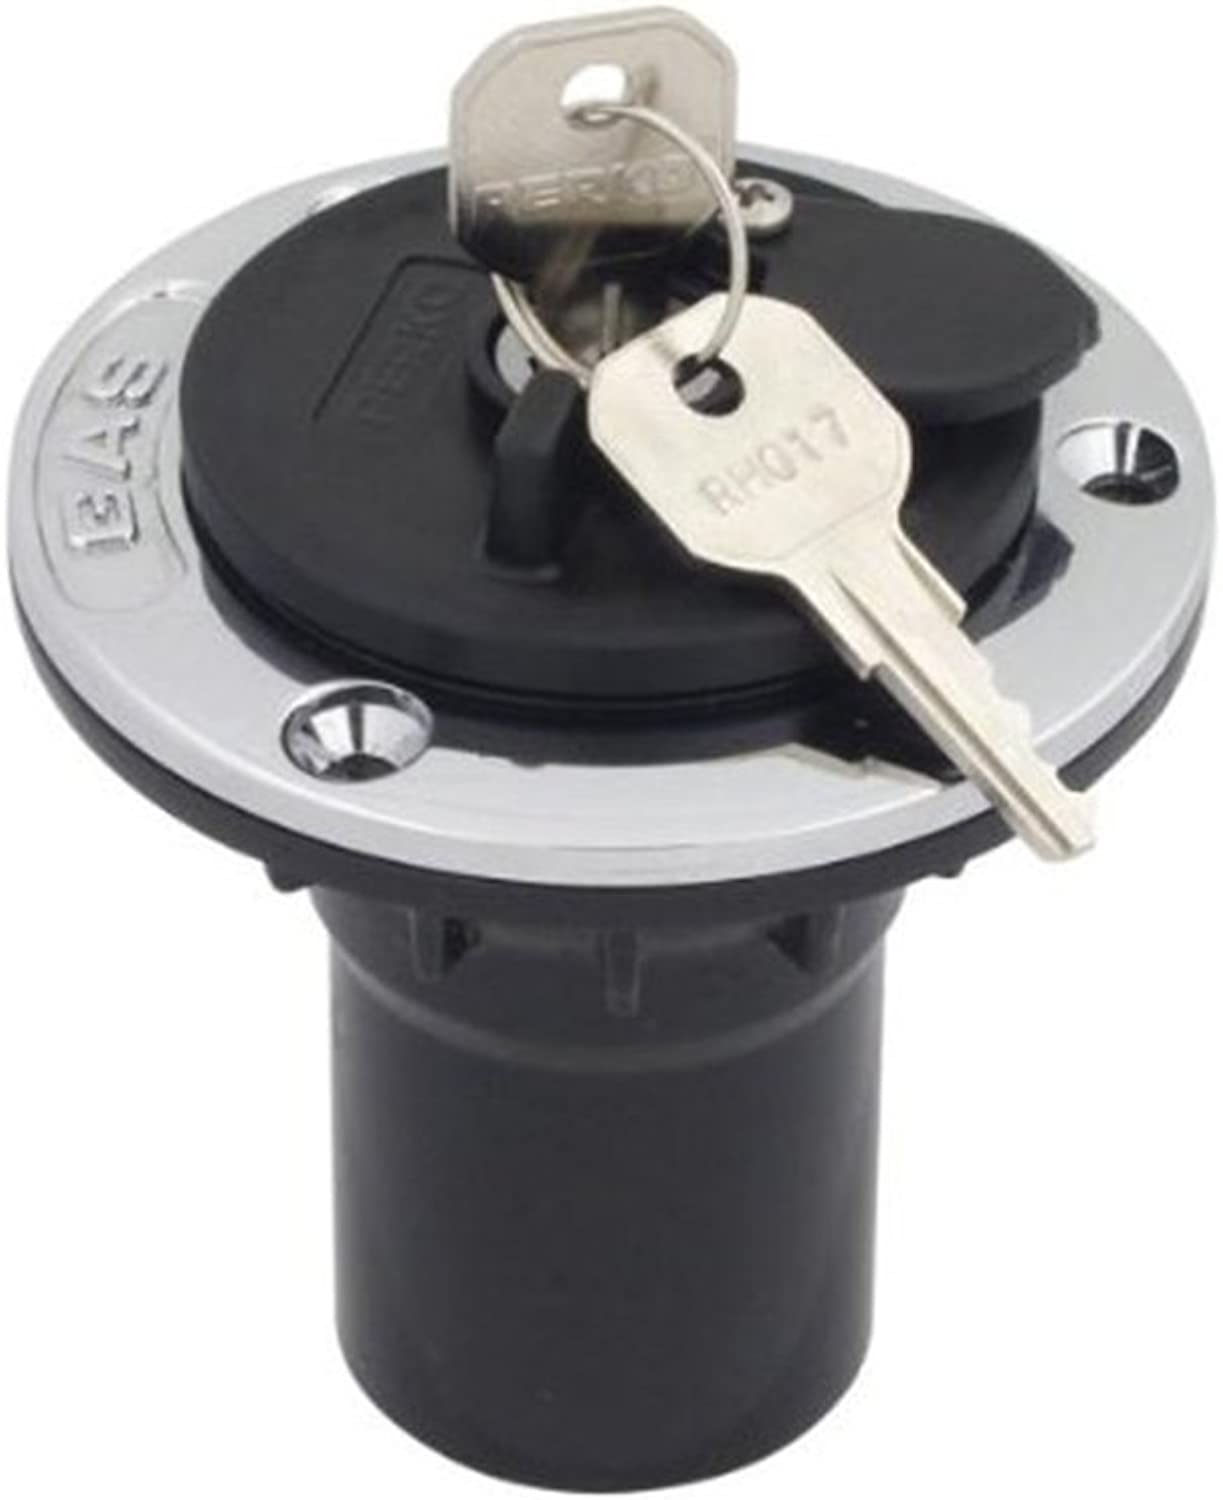 Perko 0599DPGCHR Gas Fill with Locking Cap for 11 2